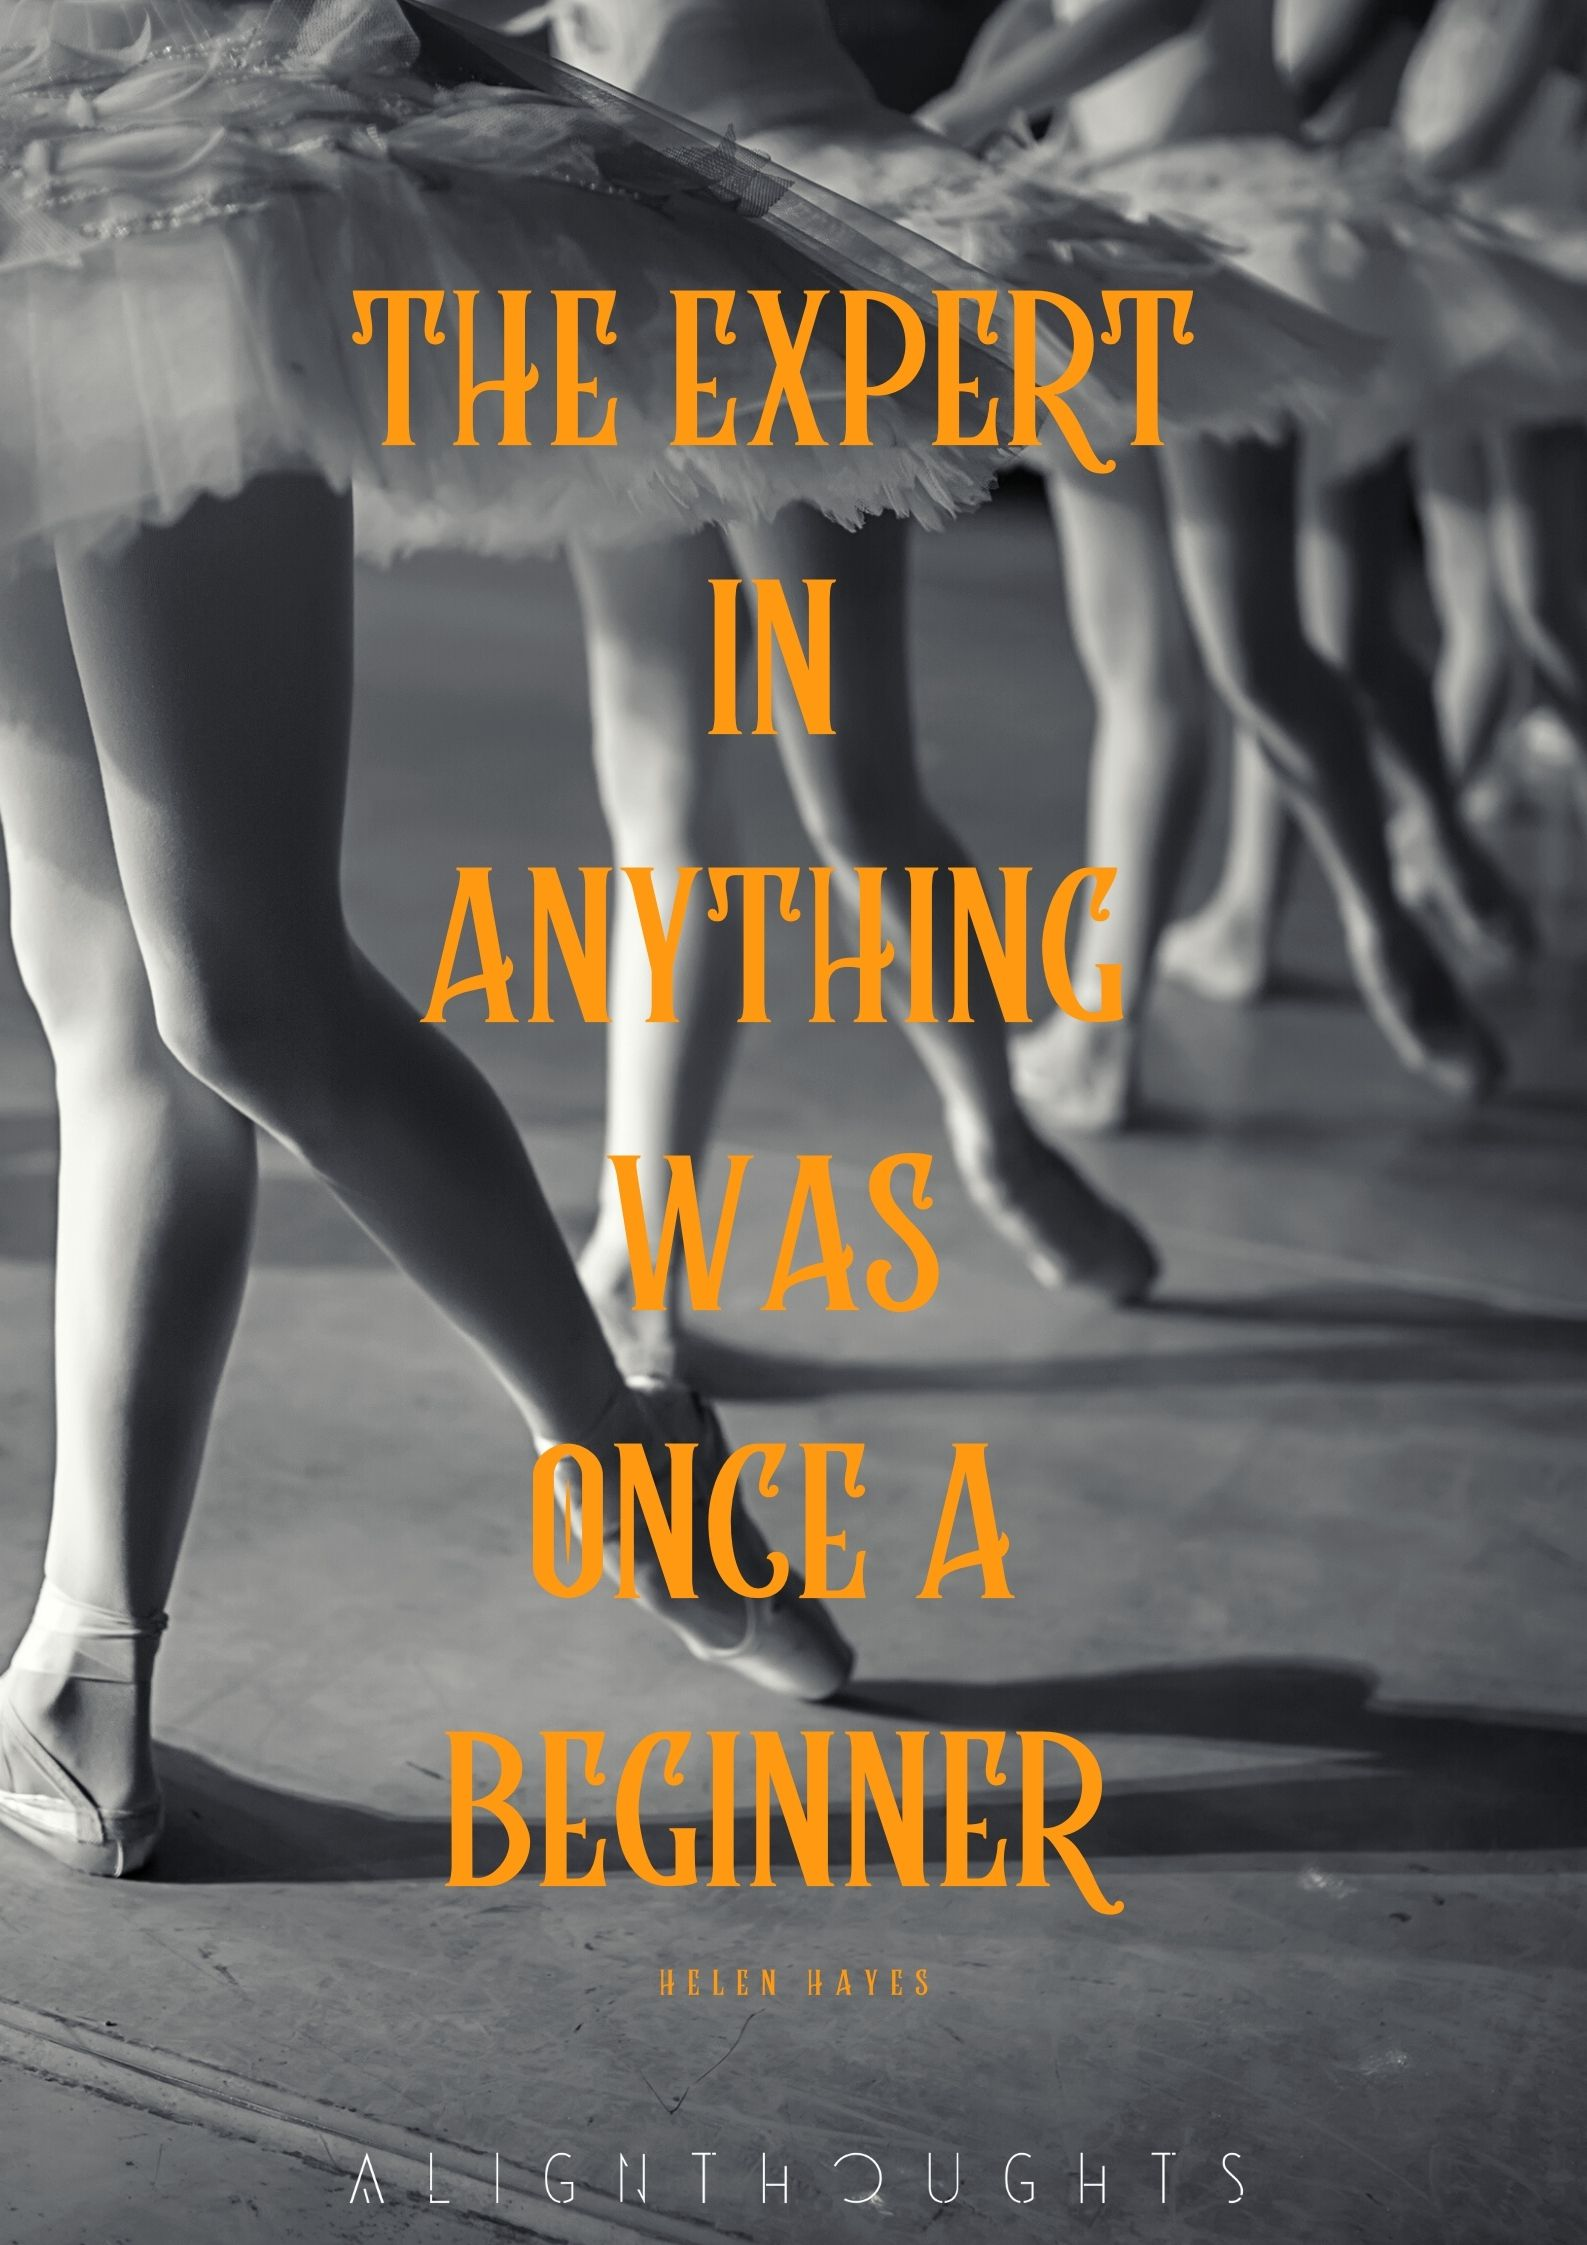 the expert in anything was once a beginner quote poster-alignthoughts